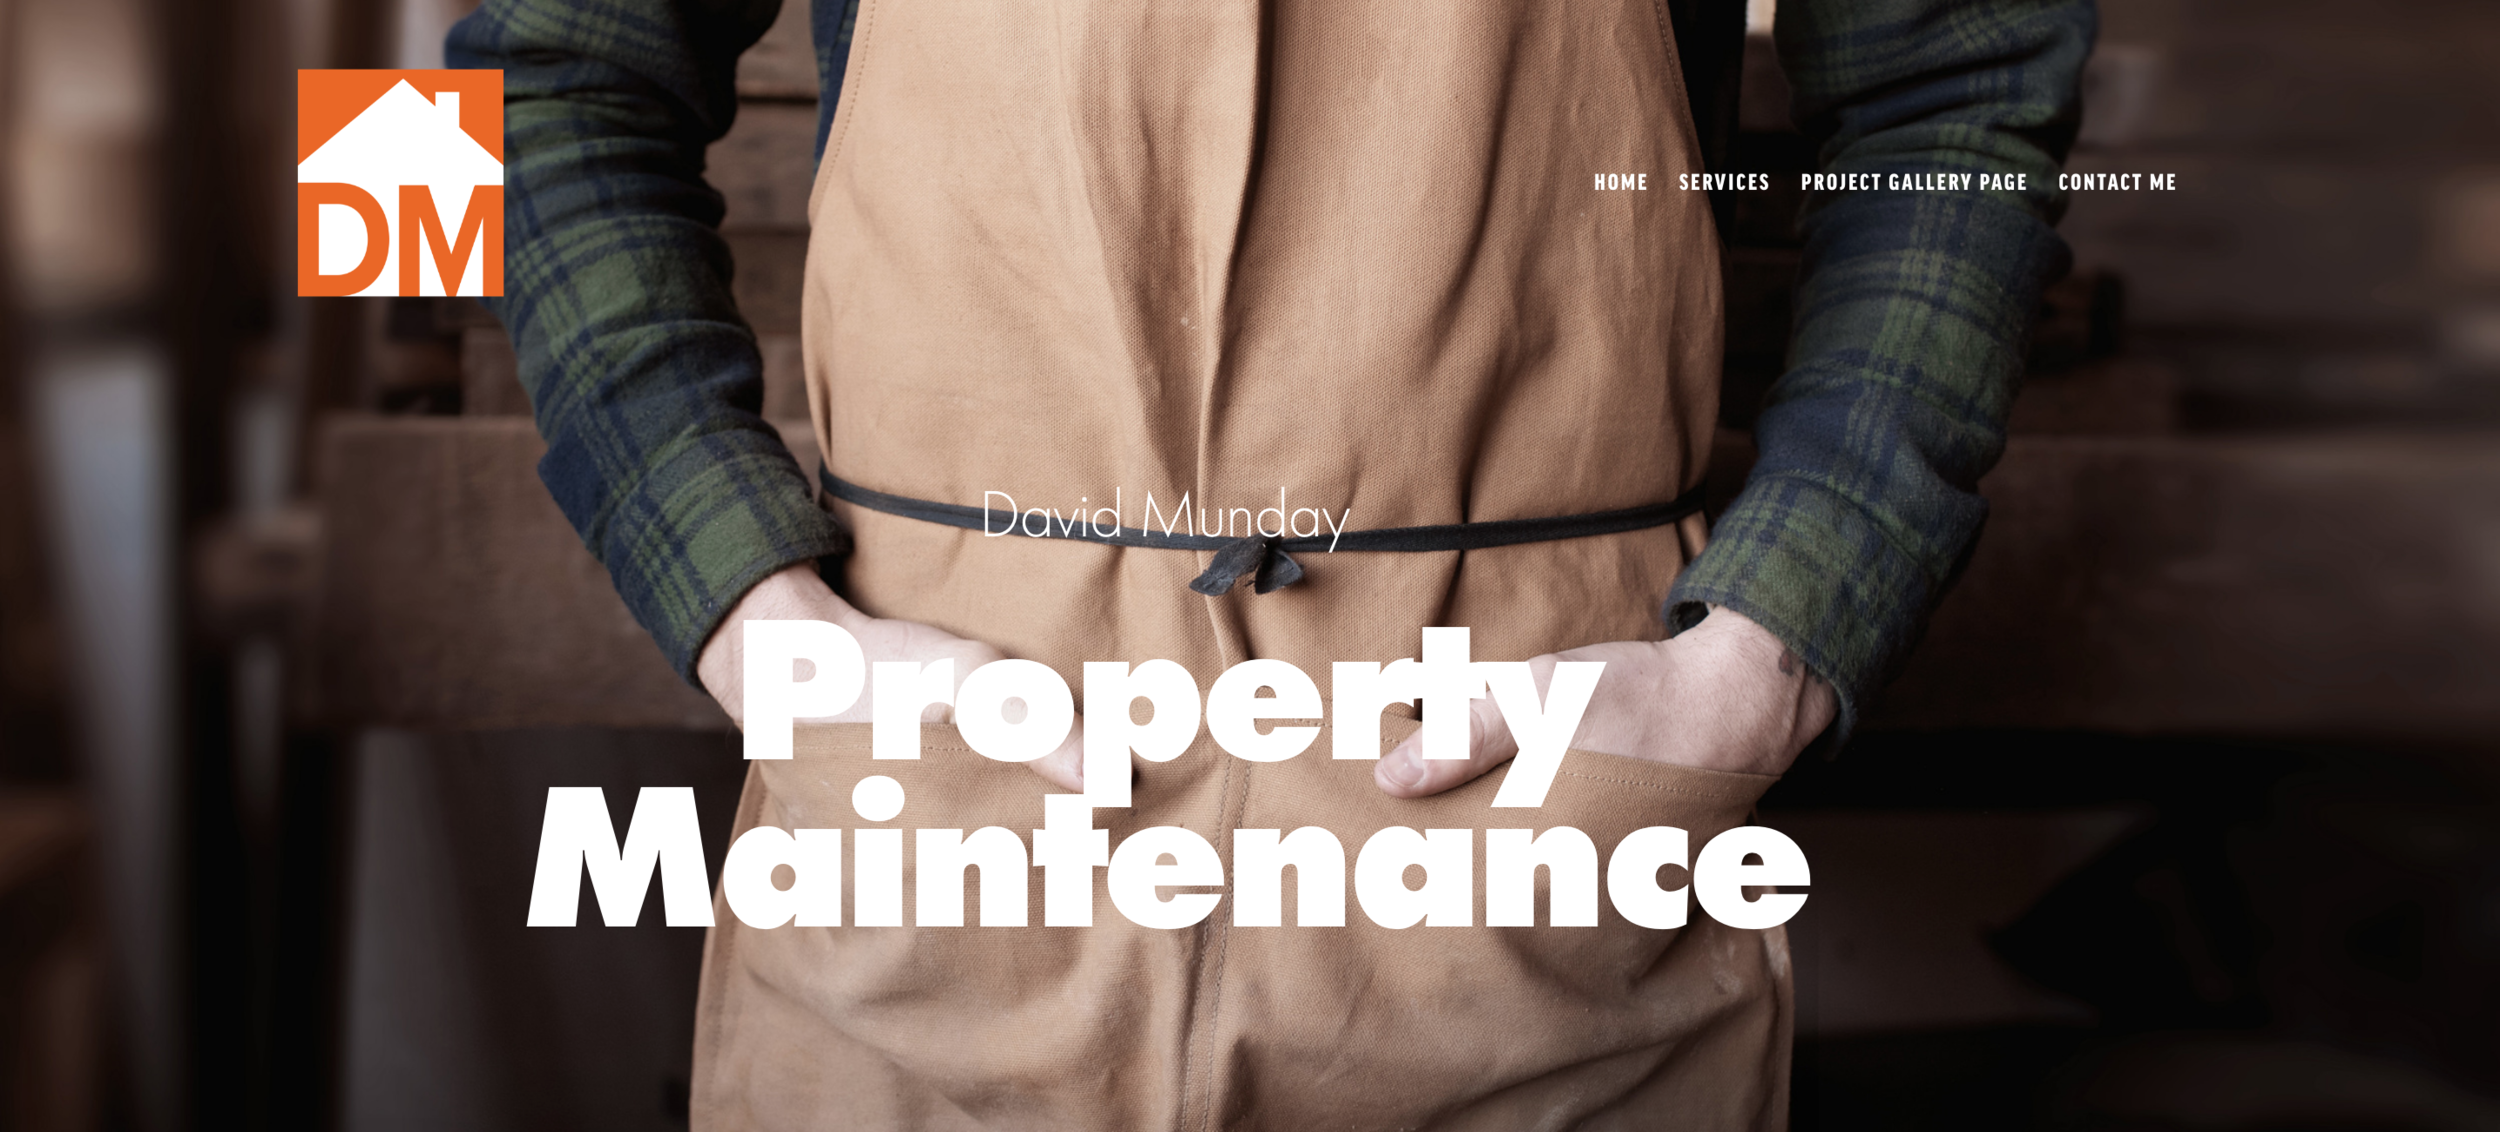 DM Property Maintenance - Local handyman needing a portfolio to showcase his work and services.